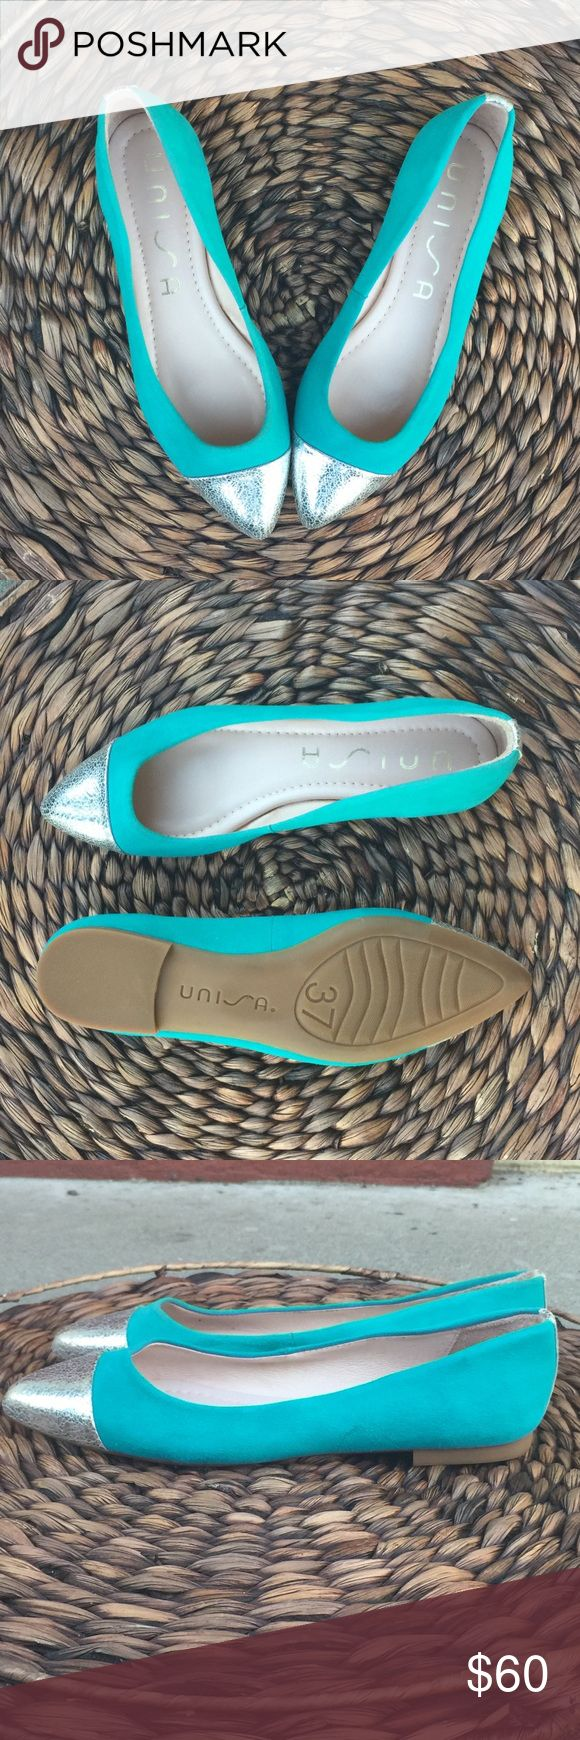 Unisa Teal Flats NEW Without Tags, never worn. Beautiful flats, blue with silver. Leather. Made in Spain . Unisa Shoes Flats & Loafers